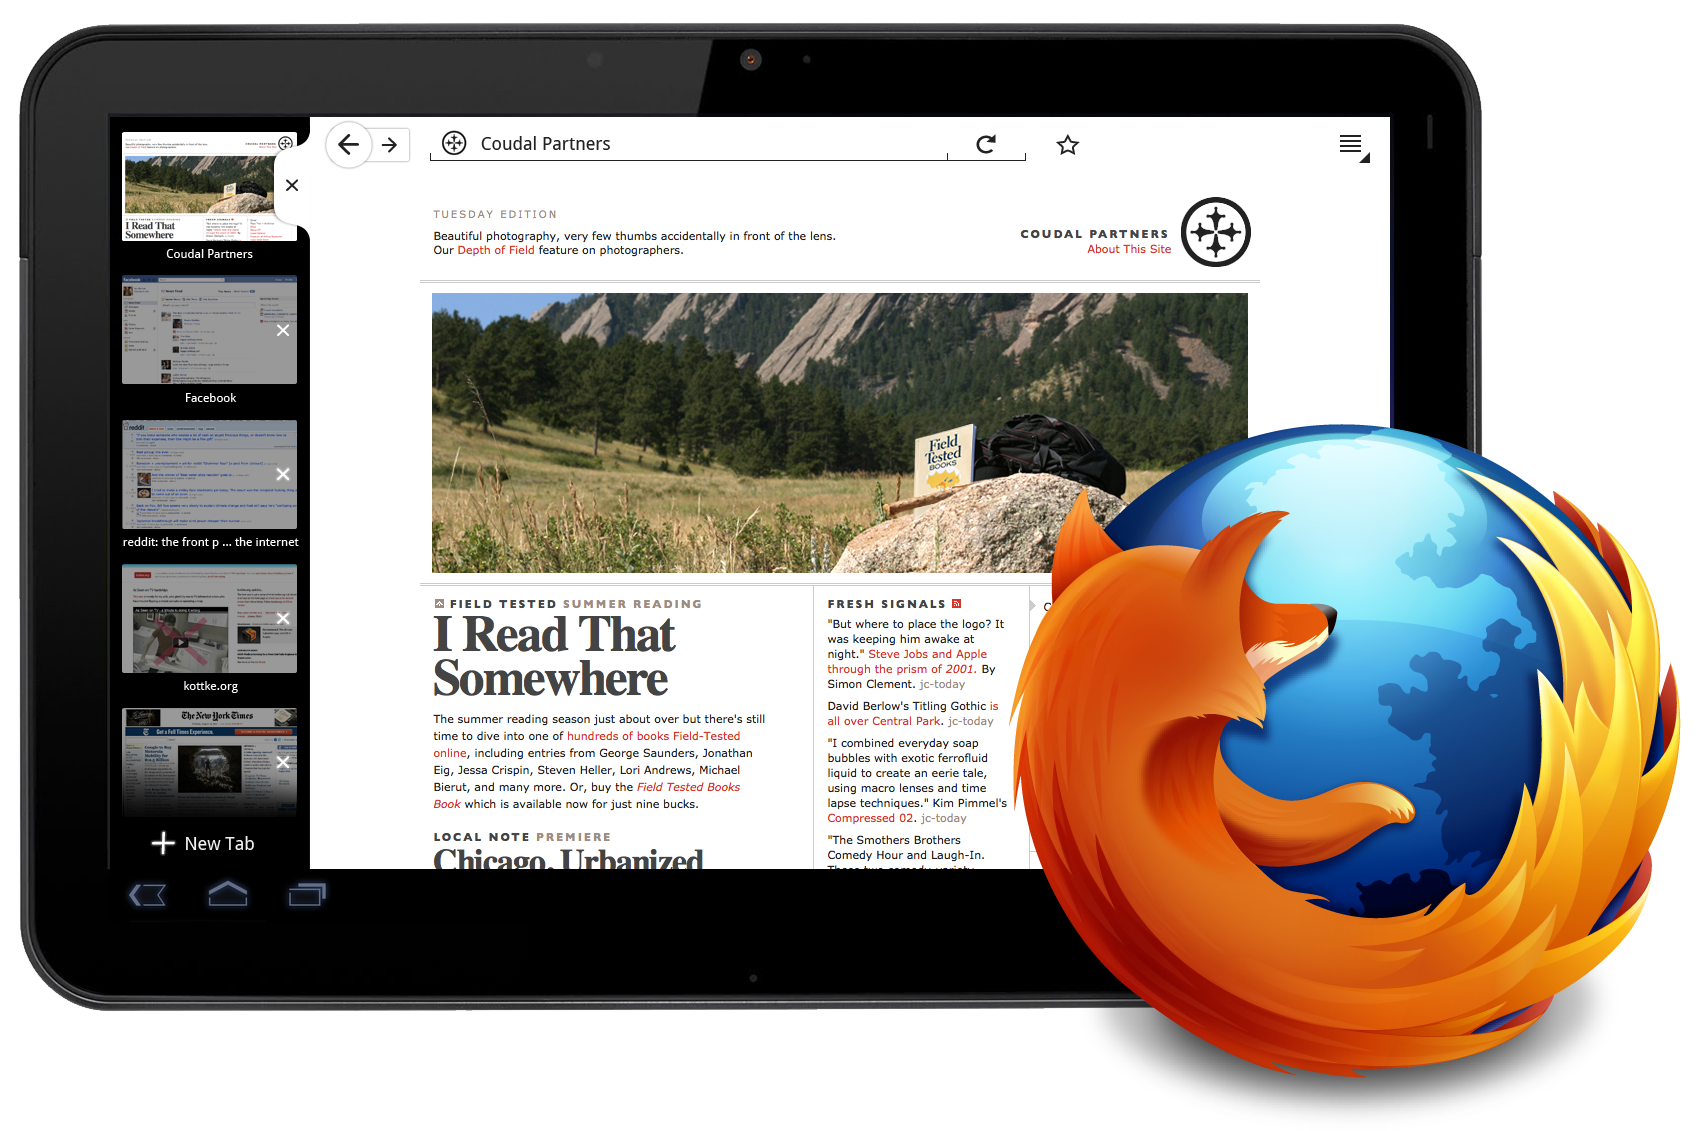 Firefox — latest news, images and photos — crypticimages.